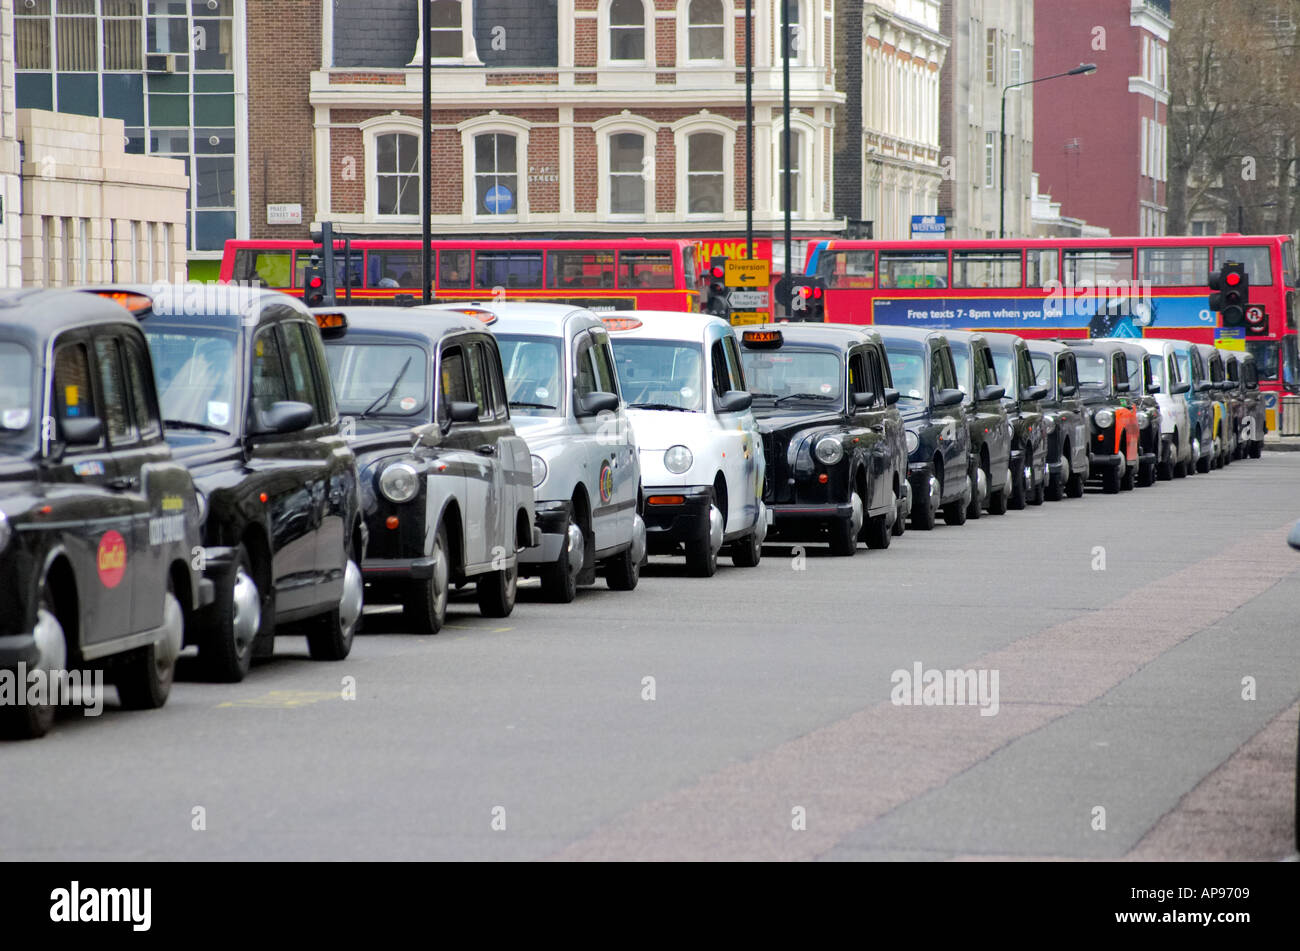 London licensed taxi black cabs taxis - Stock Image